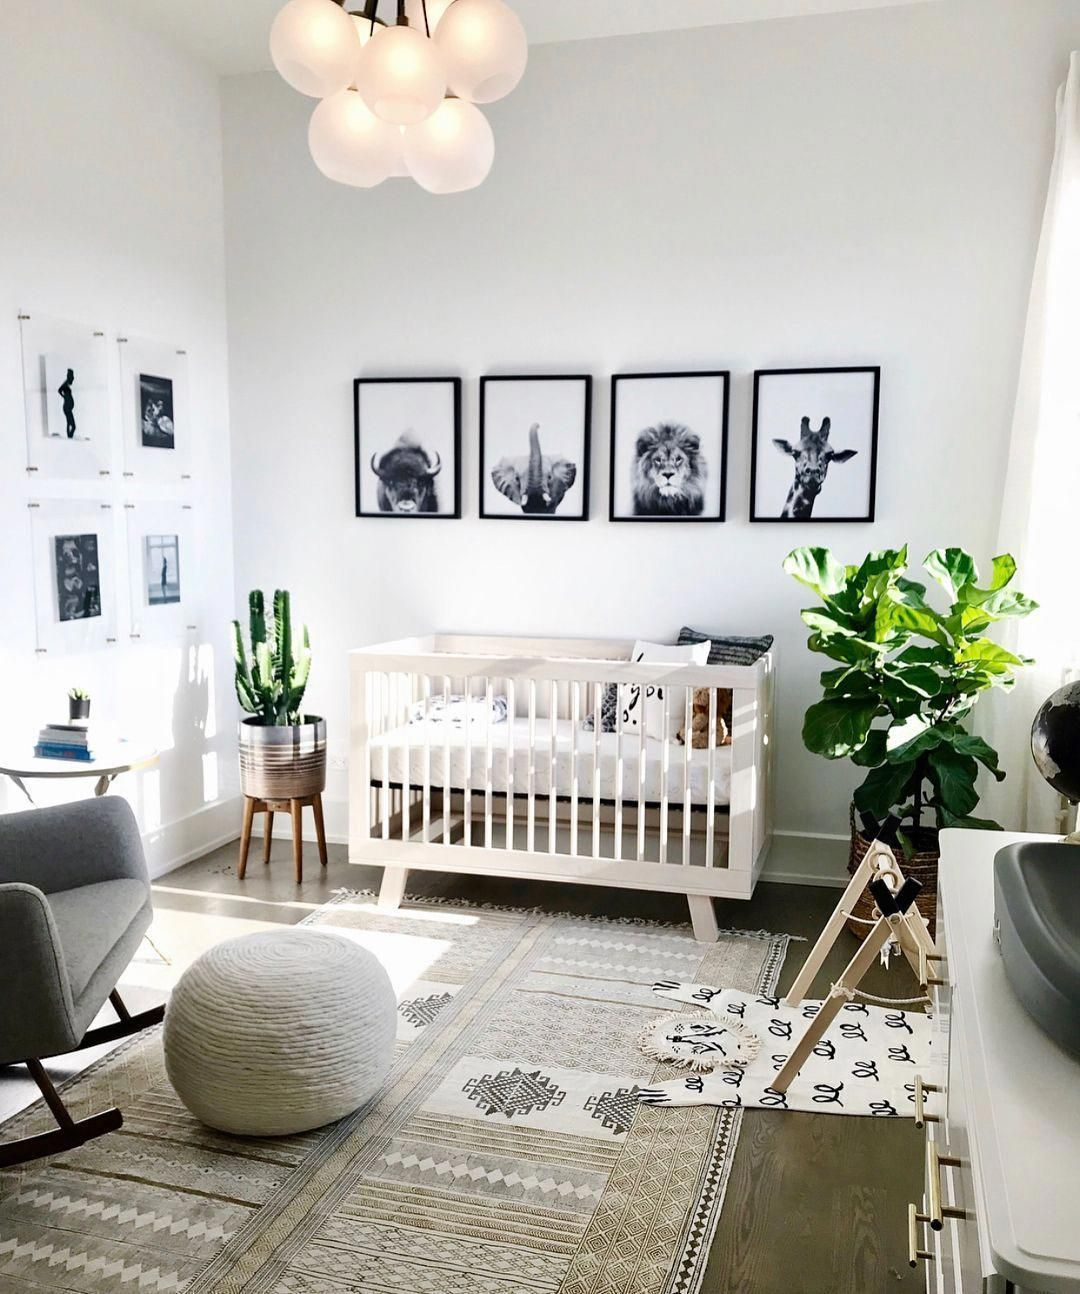 22 Baby Furniture Sets For Your Little Bundle Of Joy With Images